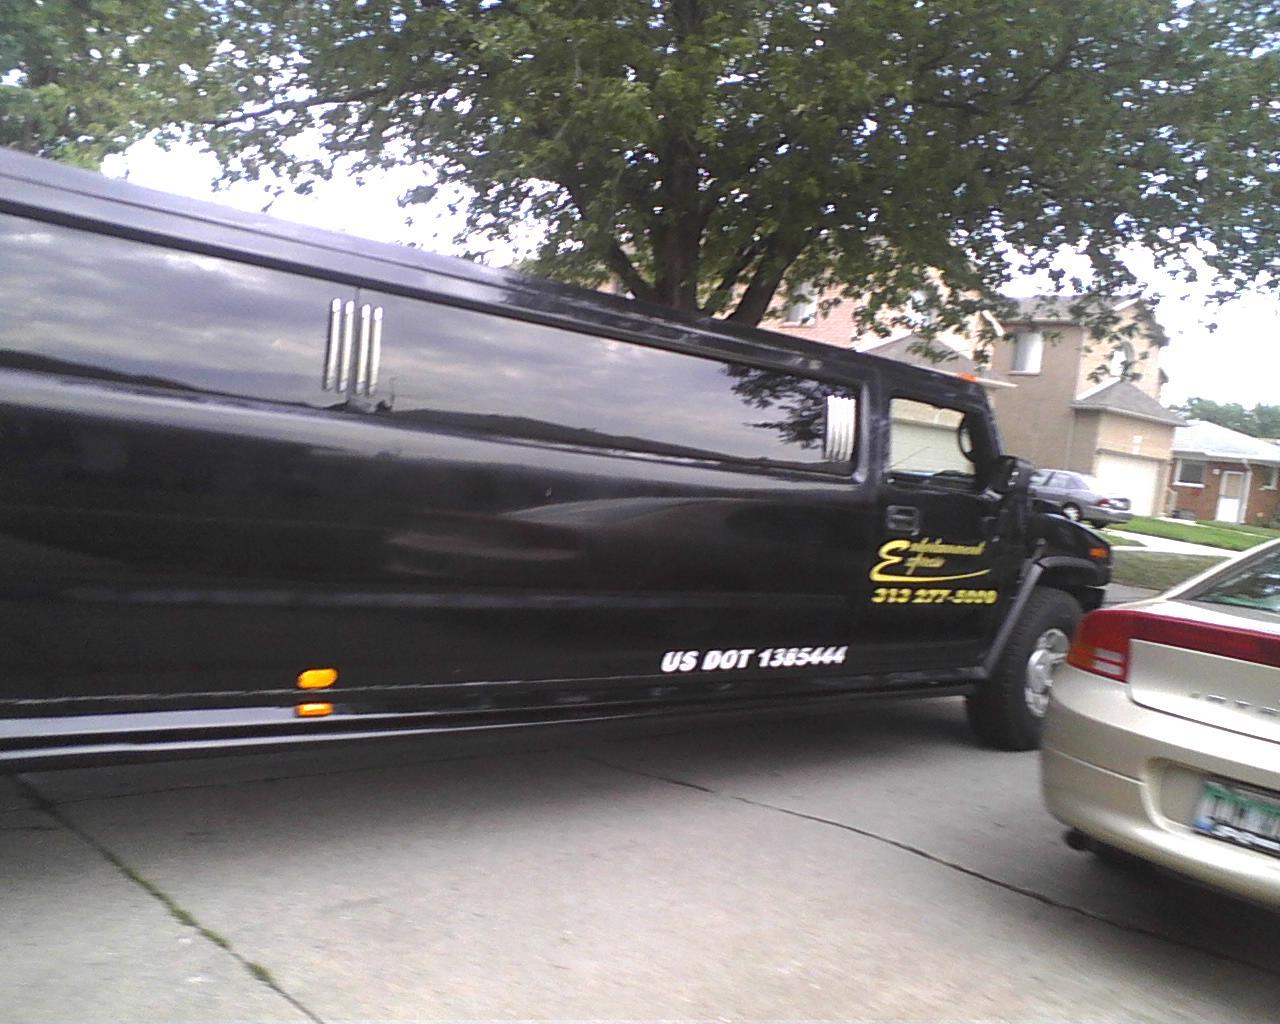 The Hummer limo from last night (: